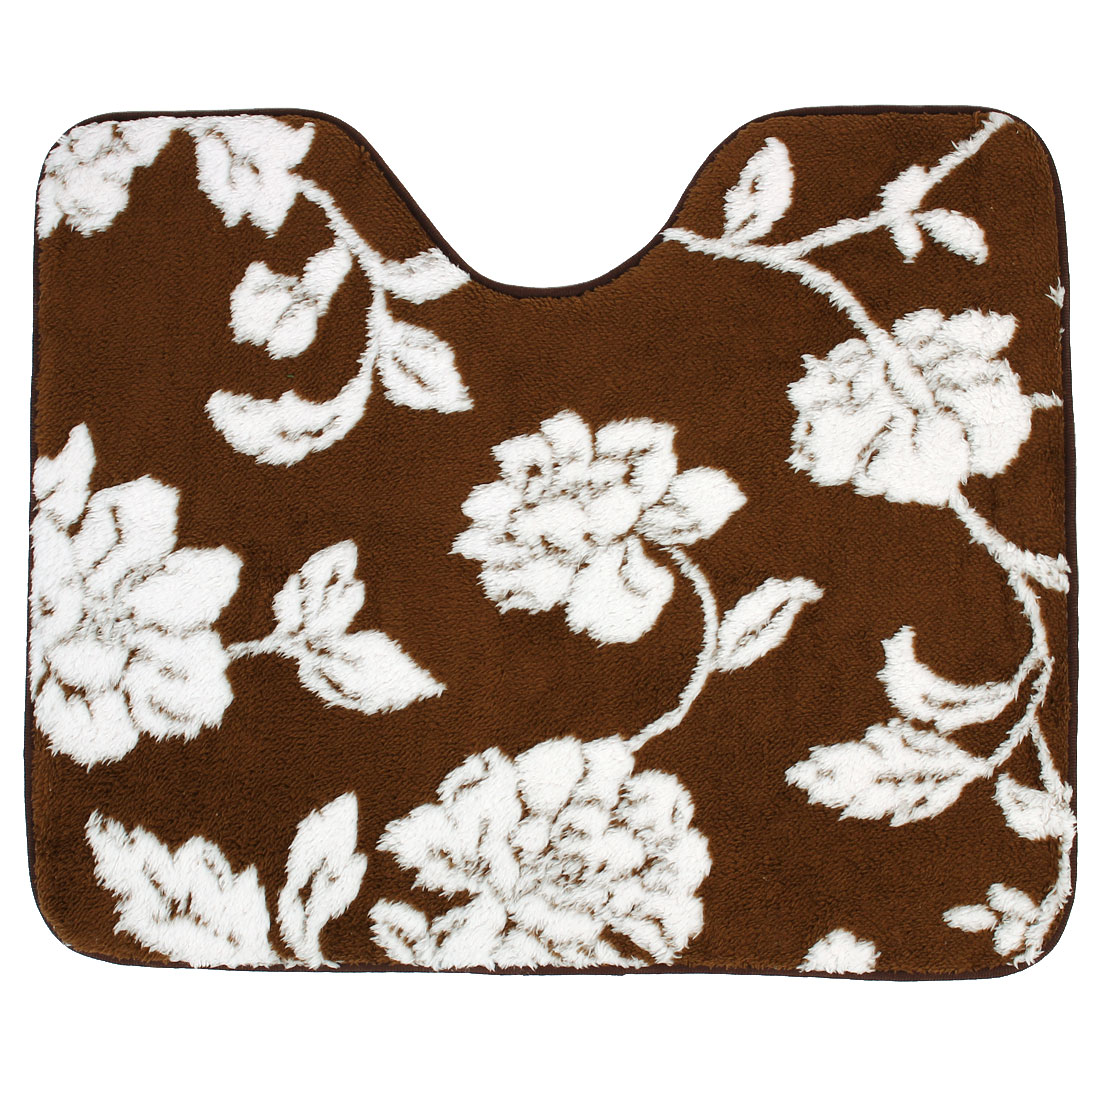 Bathroom U Shaped Flower Pattern Bath Carpet Contour Rug Mats 62cm x 51cm